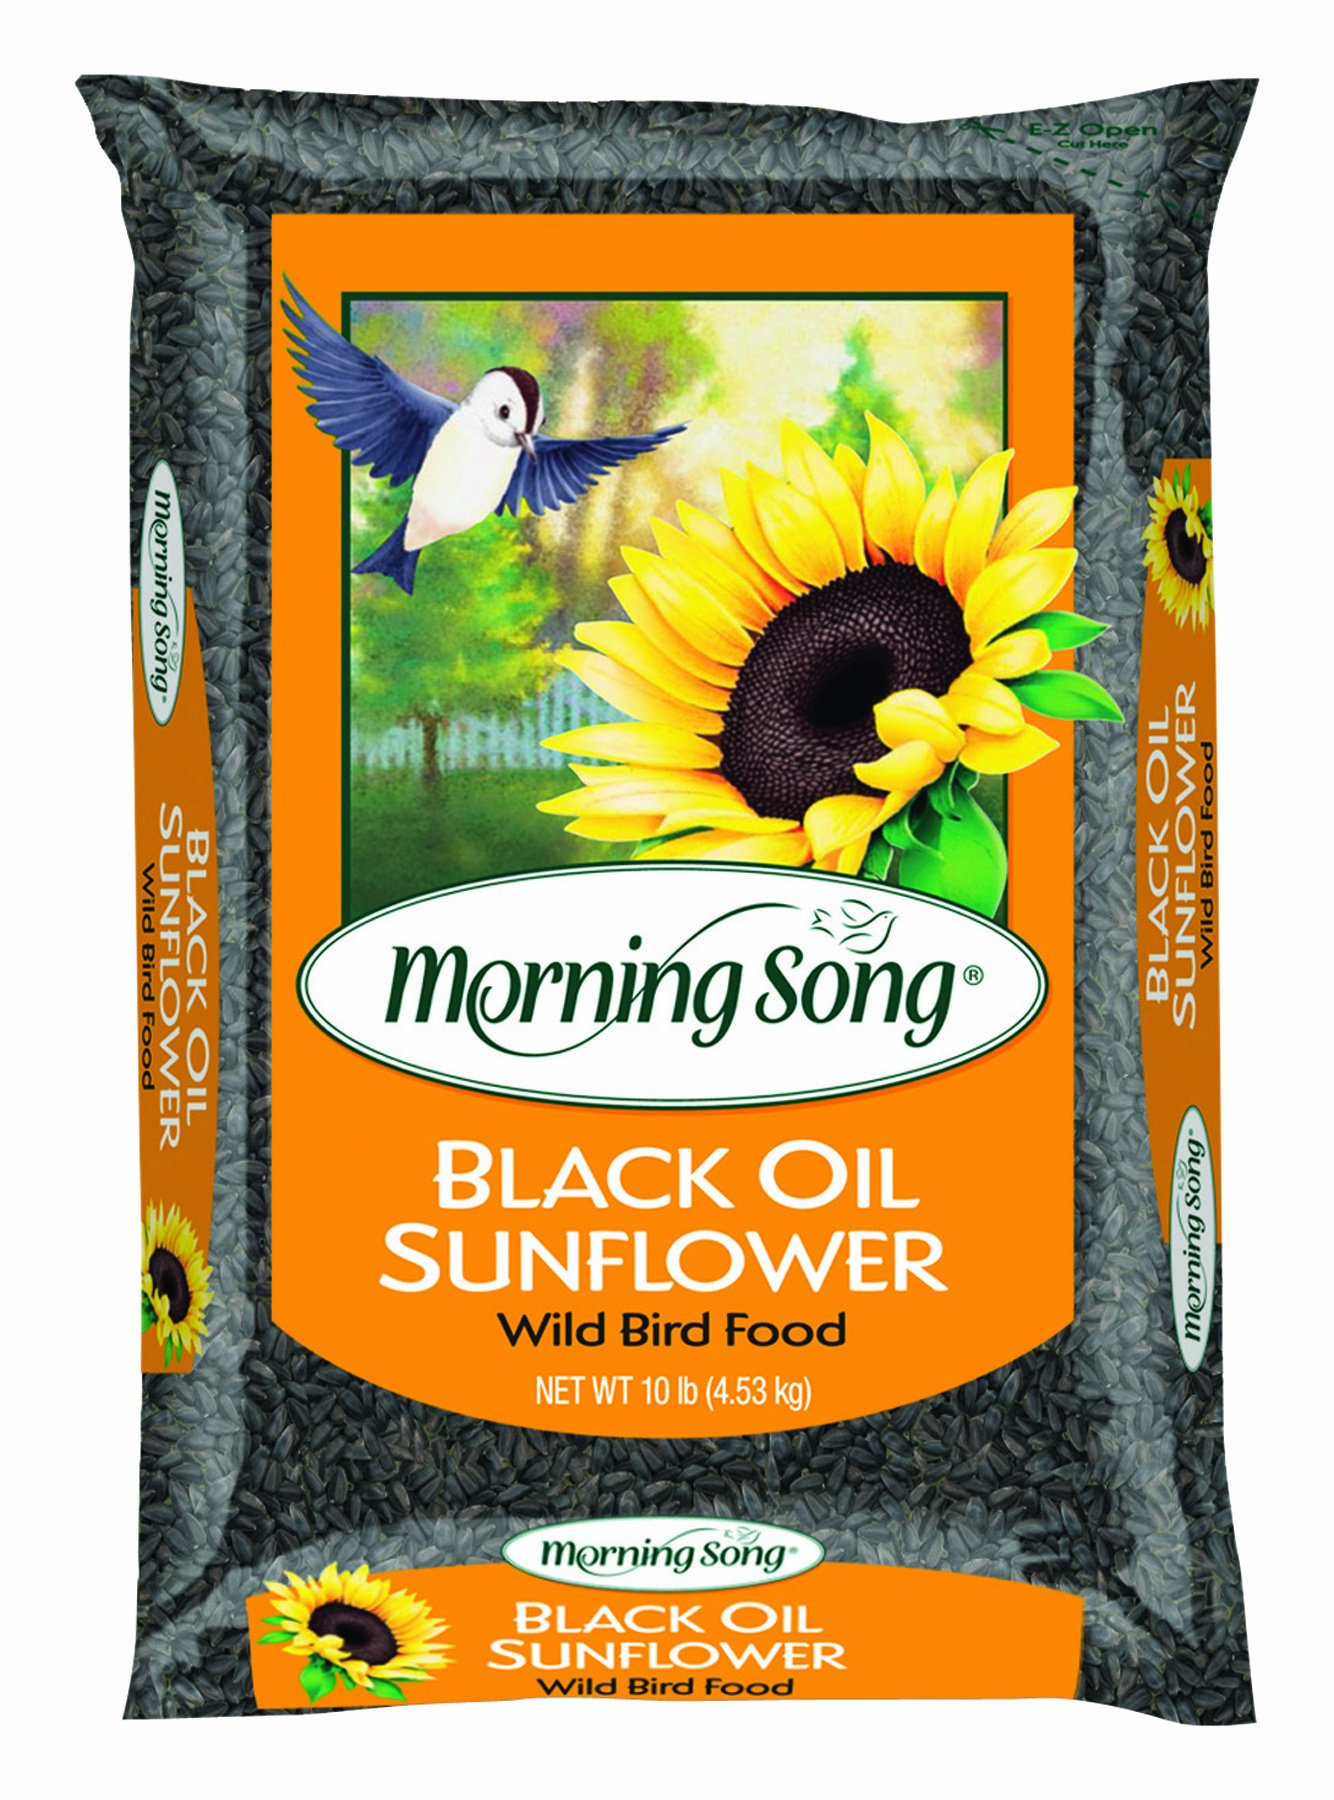 Morning Song 11996 Black Oil Sunflower Wild Bird Food, 10-Pound by Morning Song